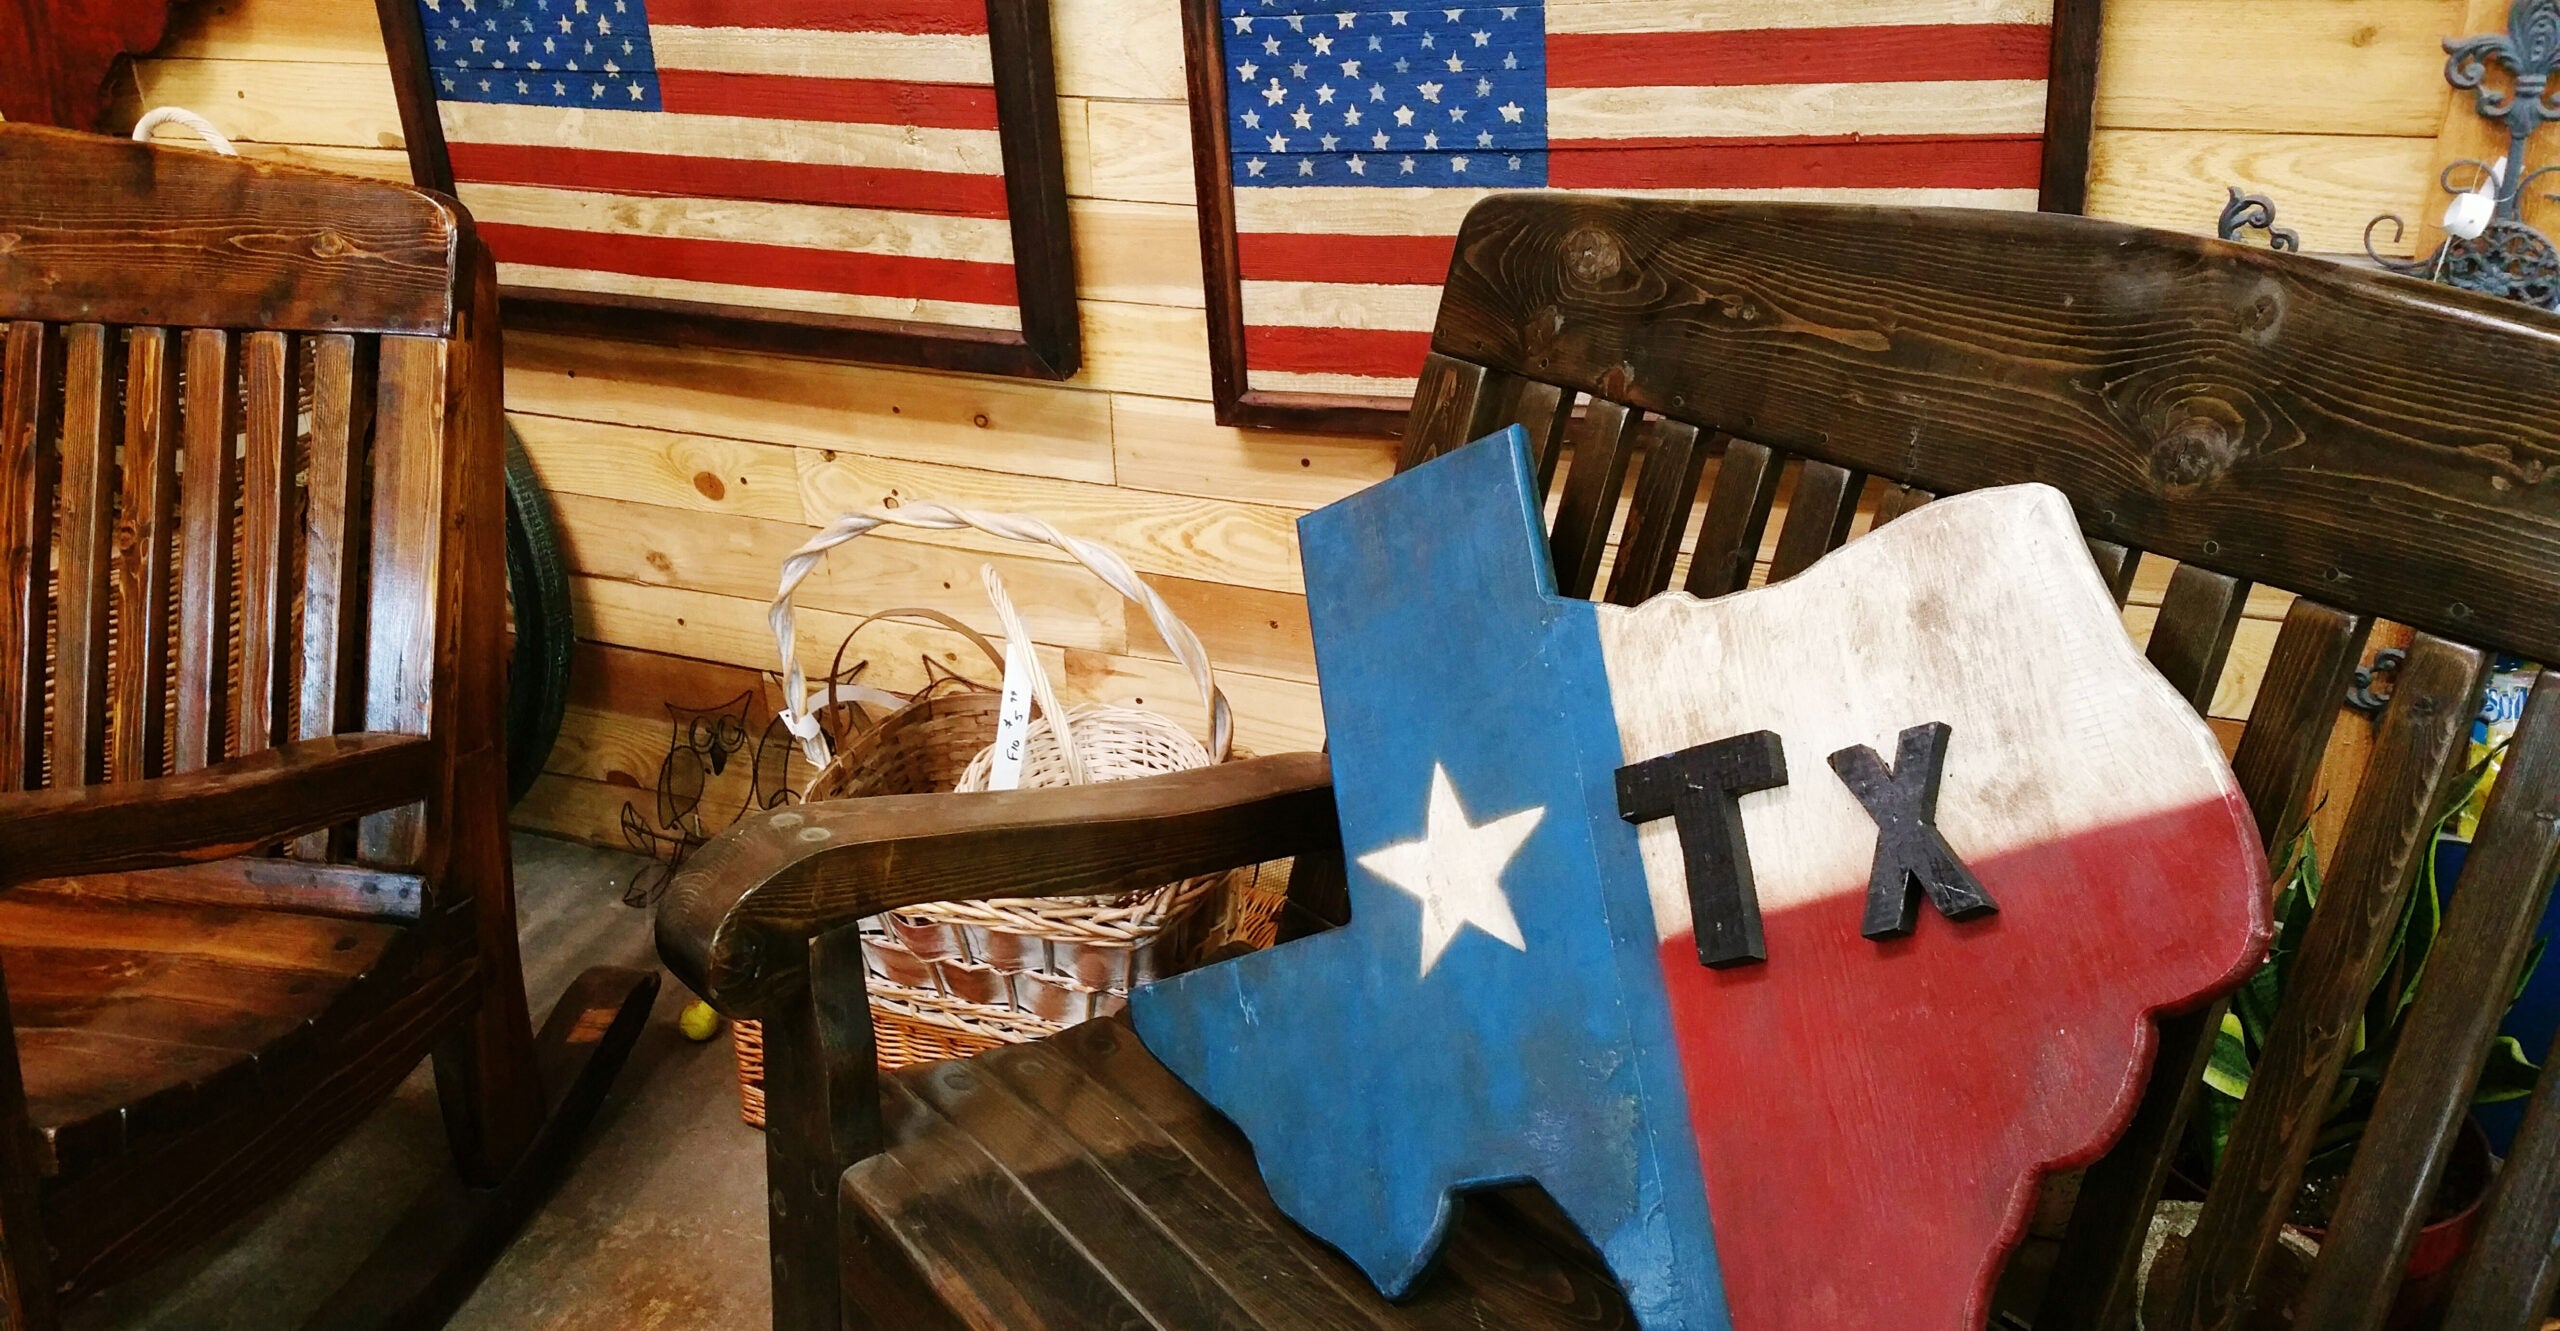 Texas' 1836 Project Aims to Promote 'Informed Patriotism'